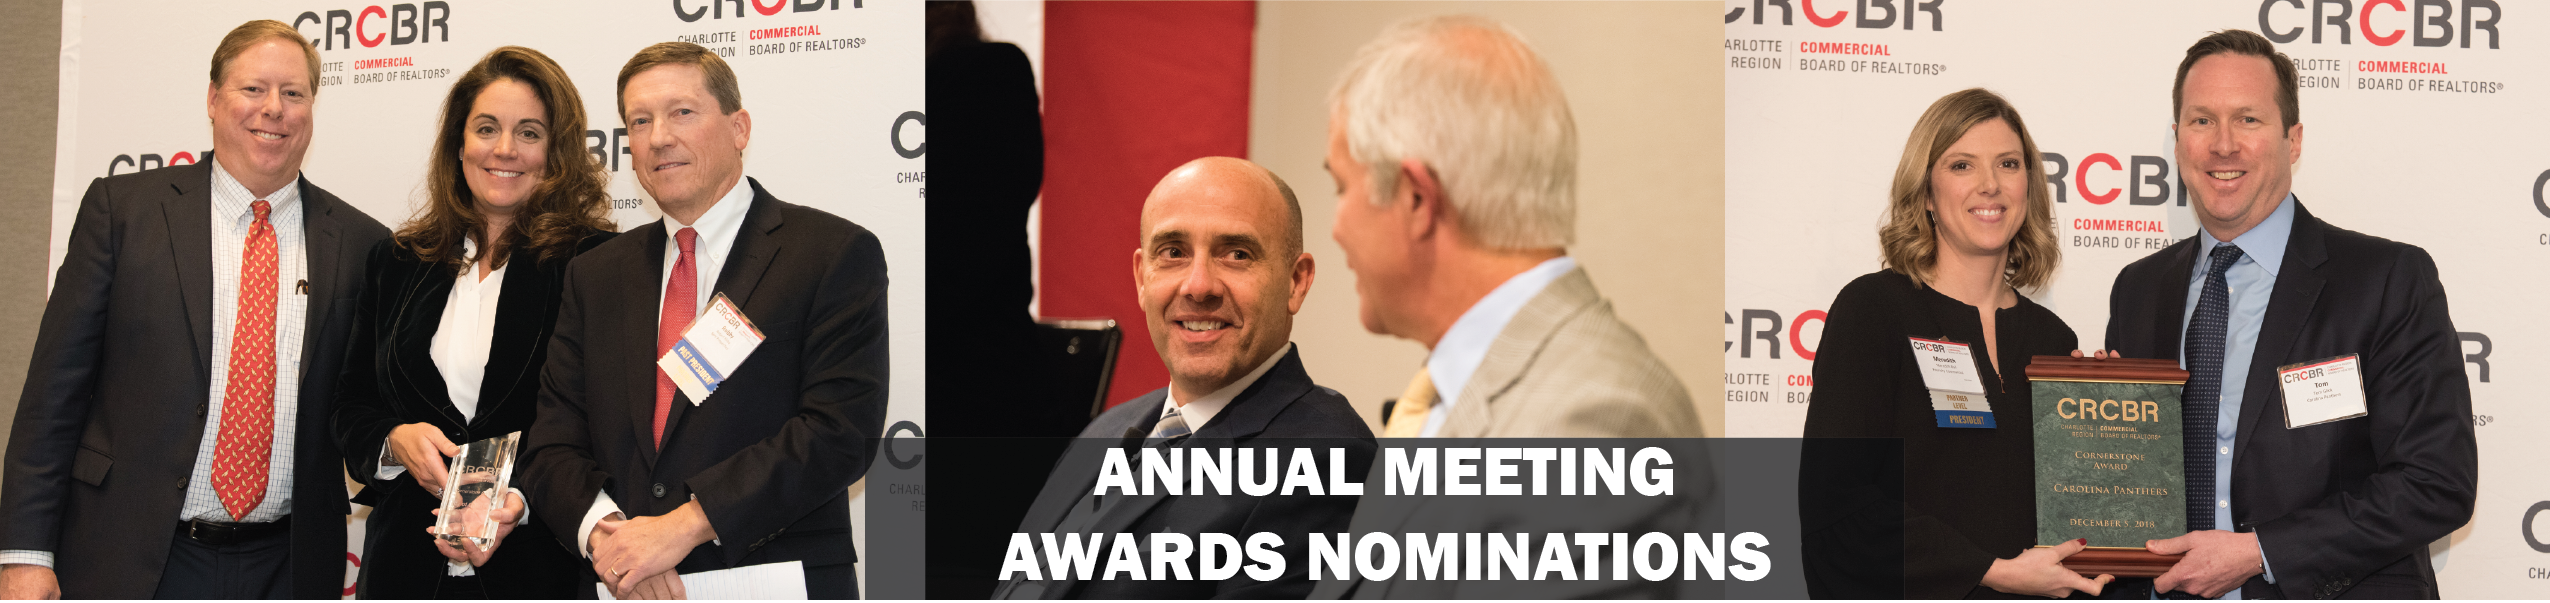 Annual Meeting Nominations